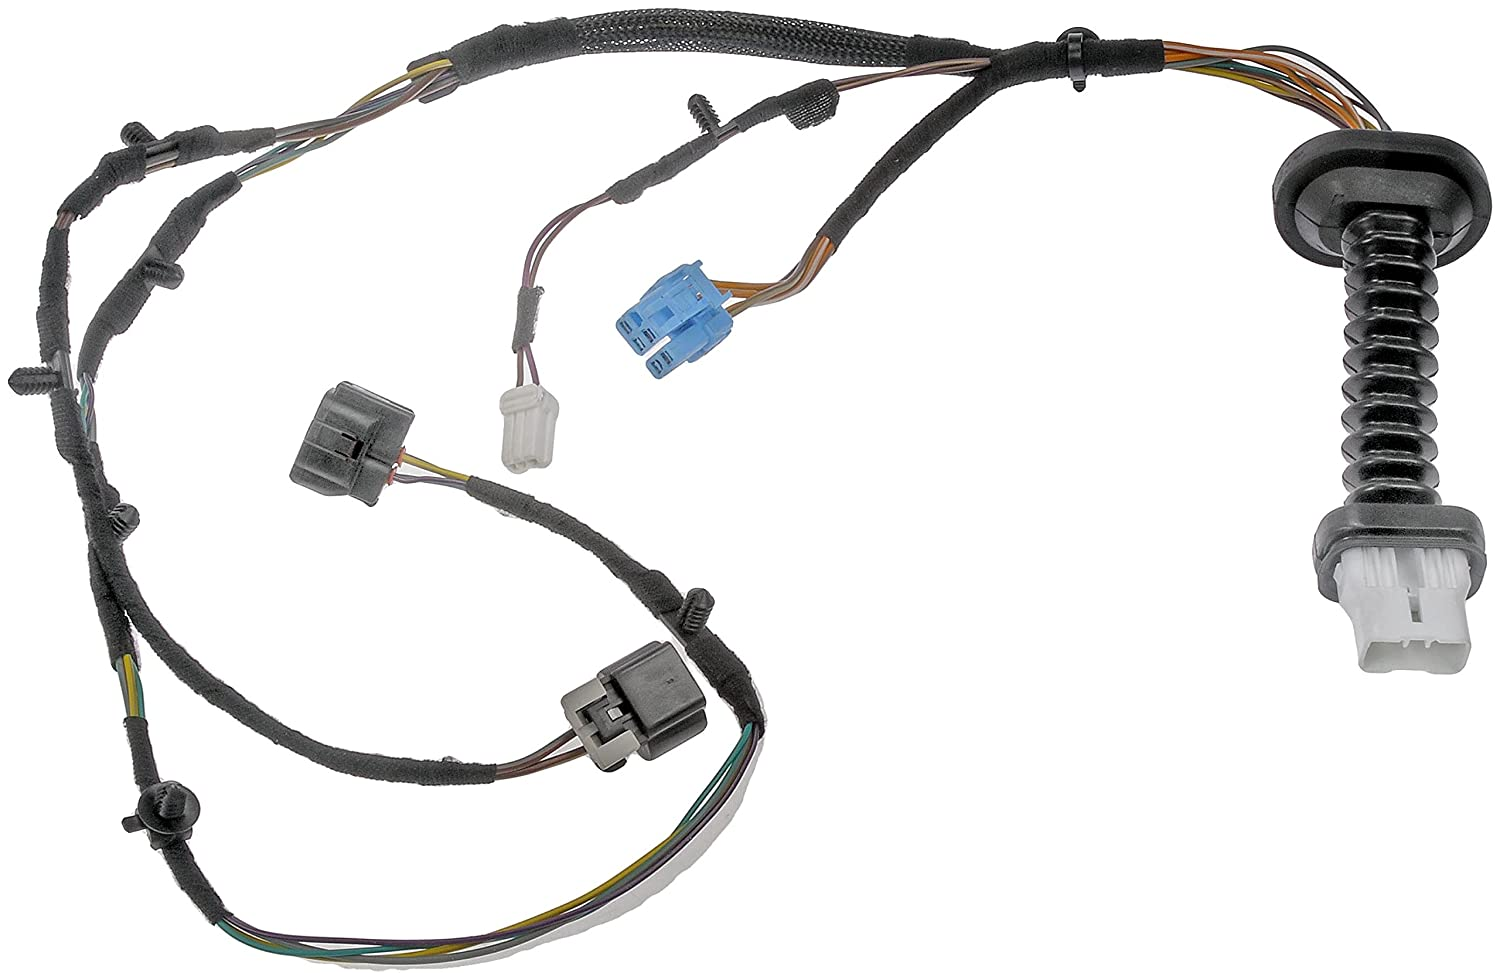 81c1LCEp7lL._SL1500_ amazon com dorman 645 506 door harness with connectors automotive 2002 dodge ram 1500 rear door wiring harness at gsmportal.co